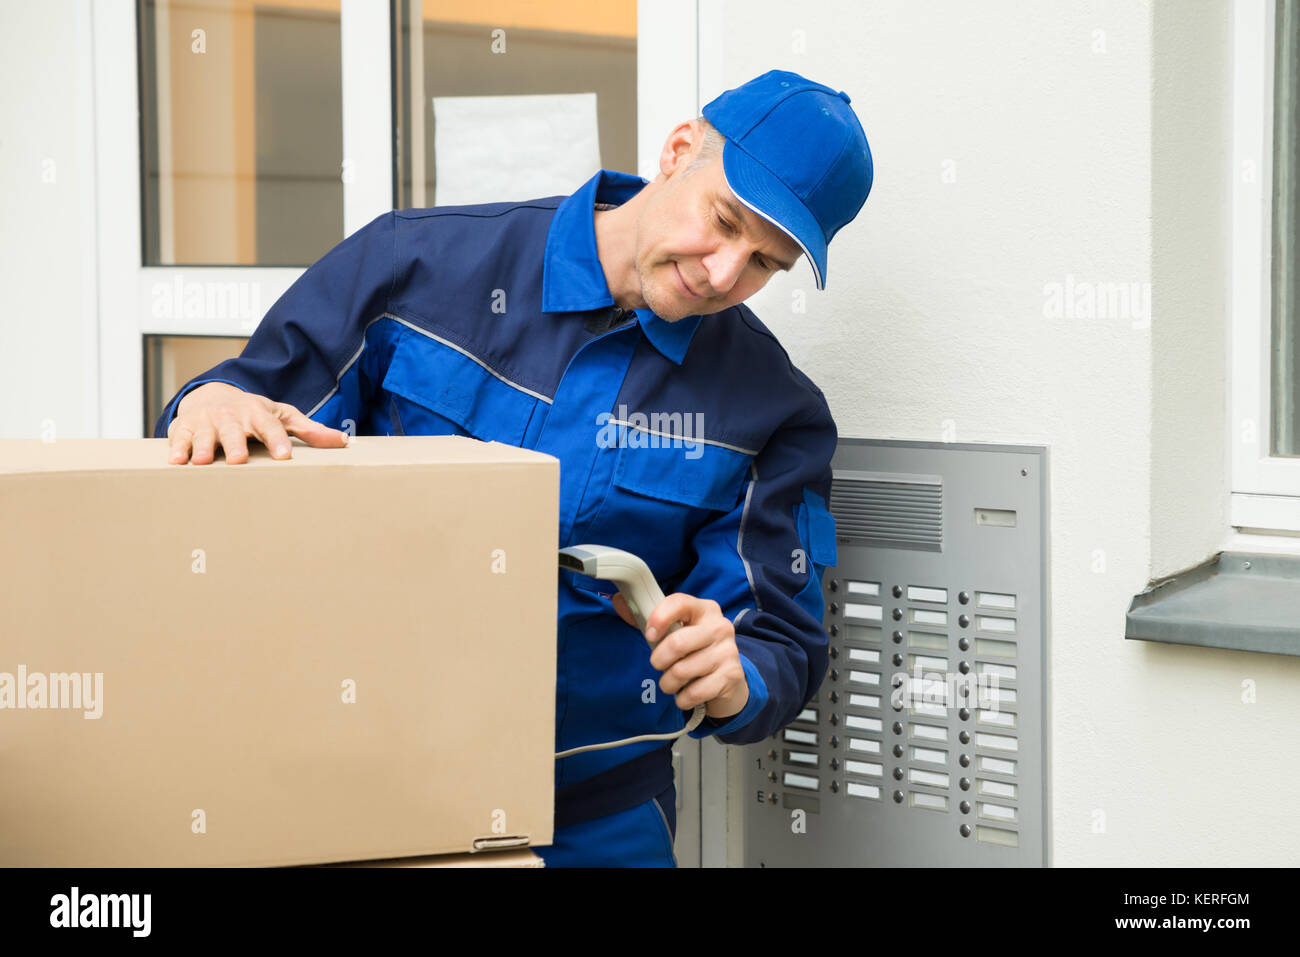 Mature Delivery Man Scanning Cardboard Boxes With Barcode Scanner - Stock Image